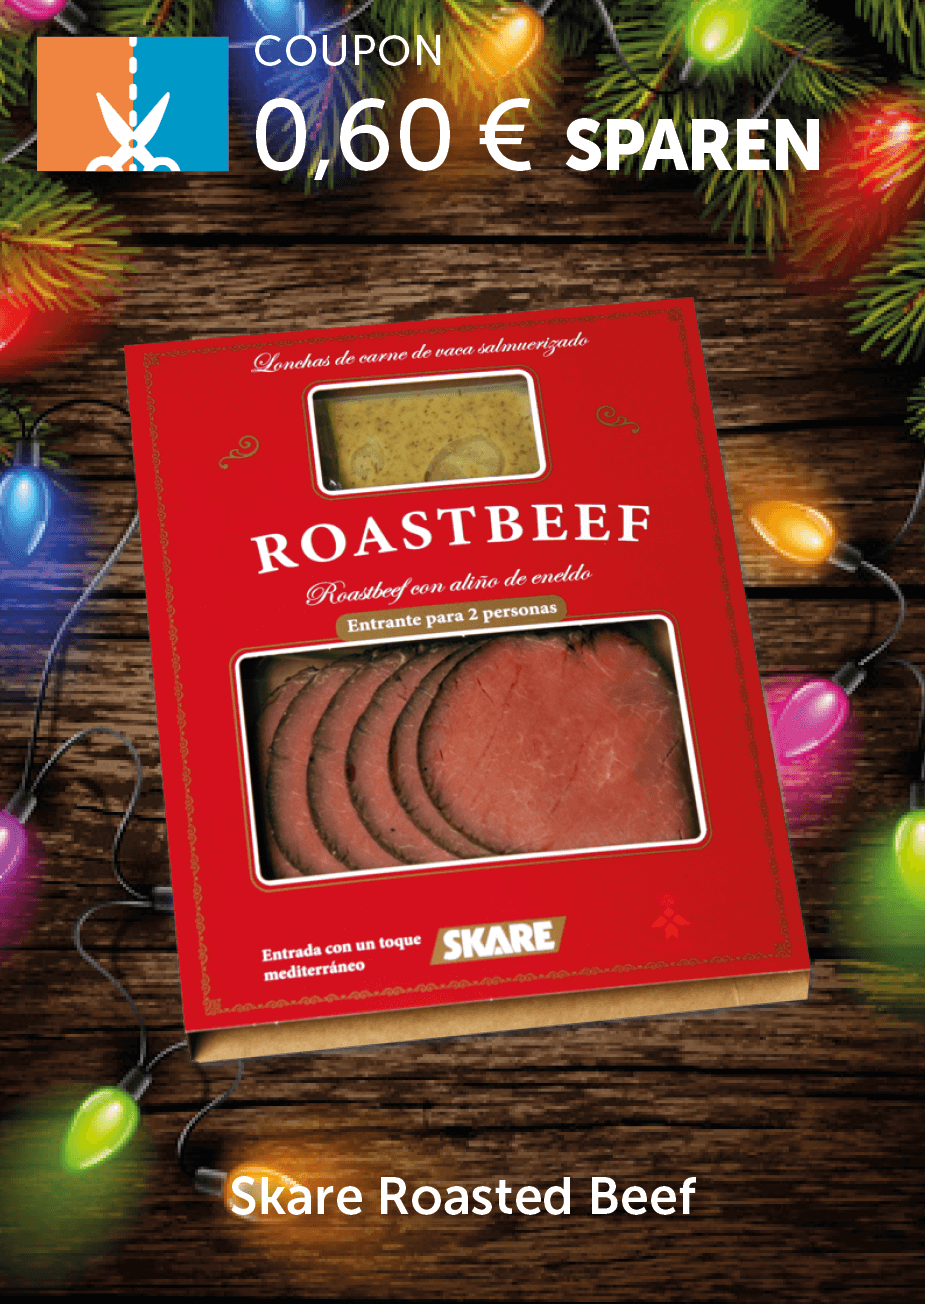 Skare Roasted Beef Coupon